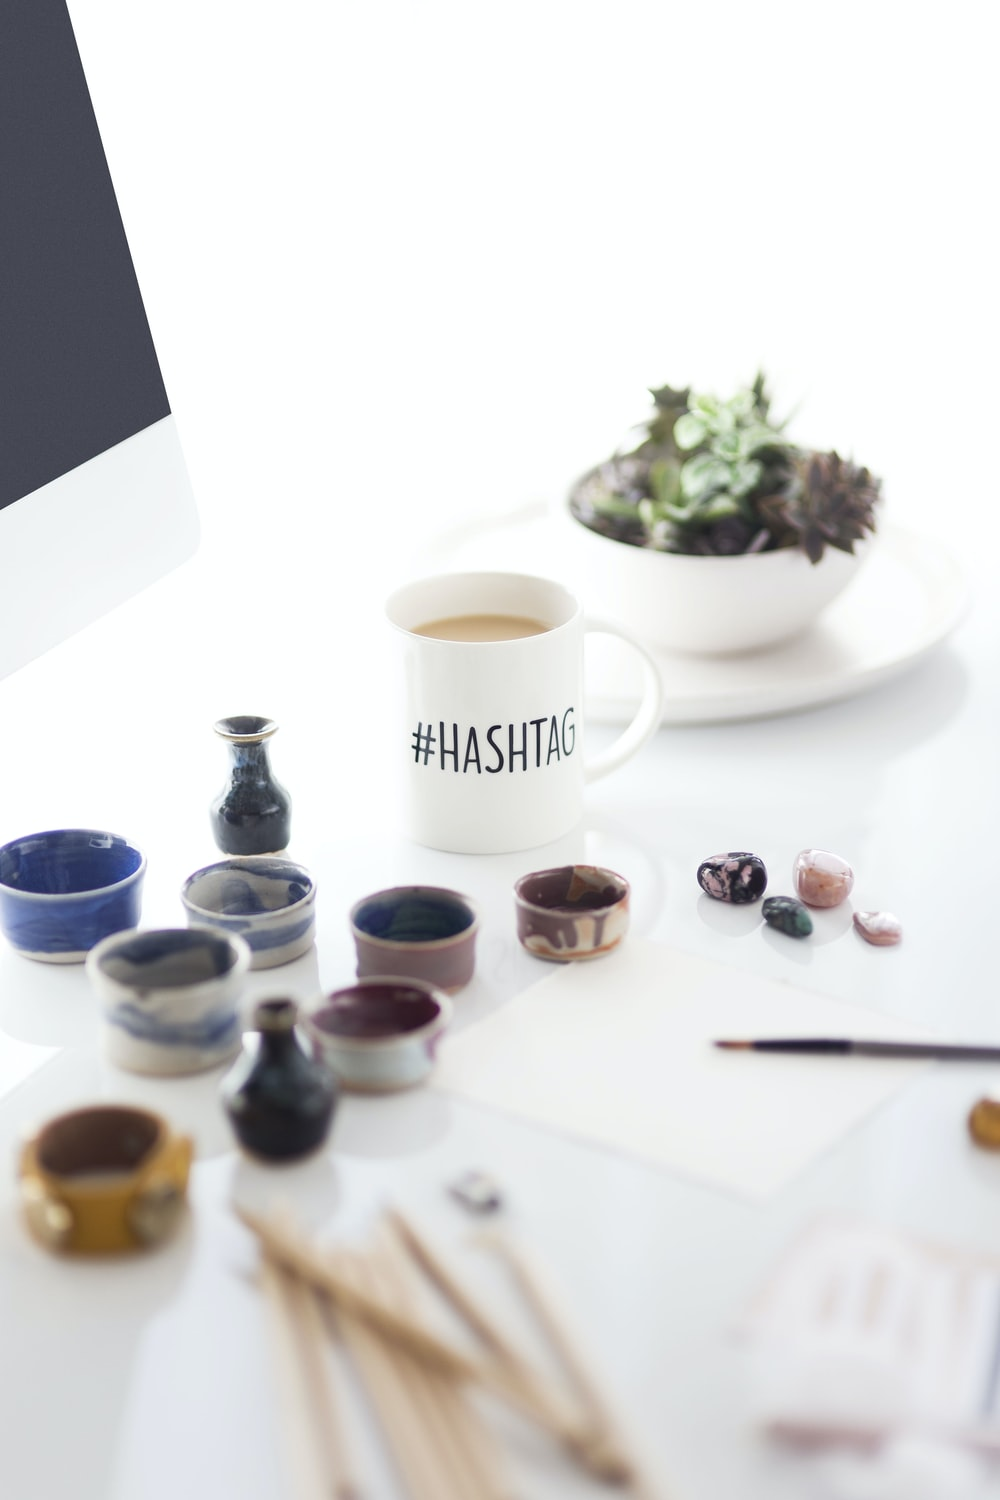 white #hashtag ceramic mug filled with coffee